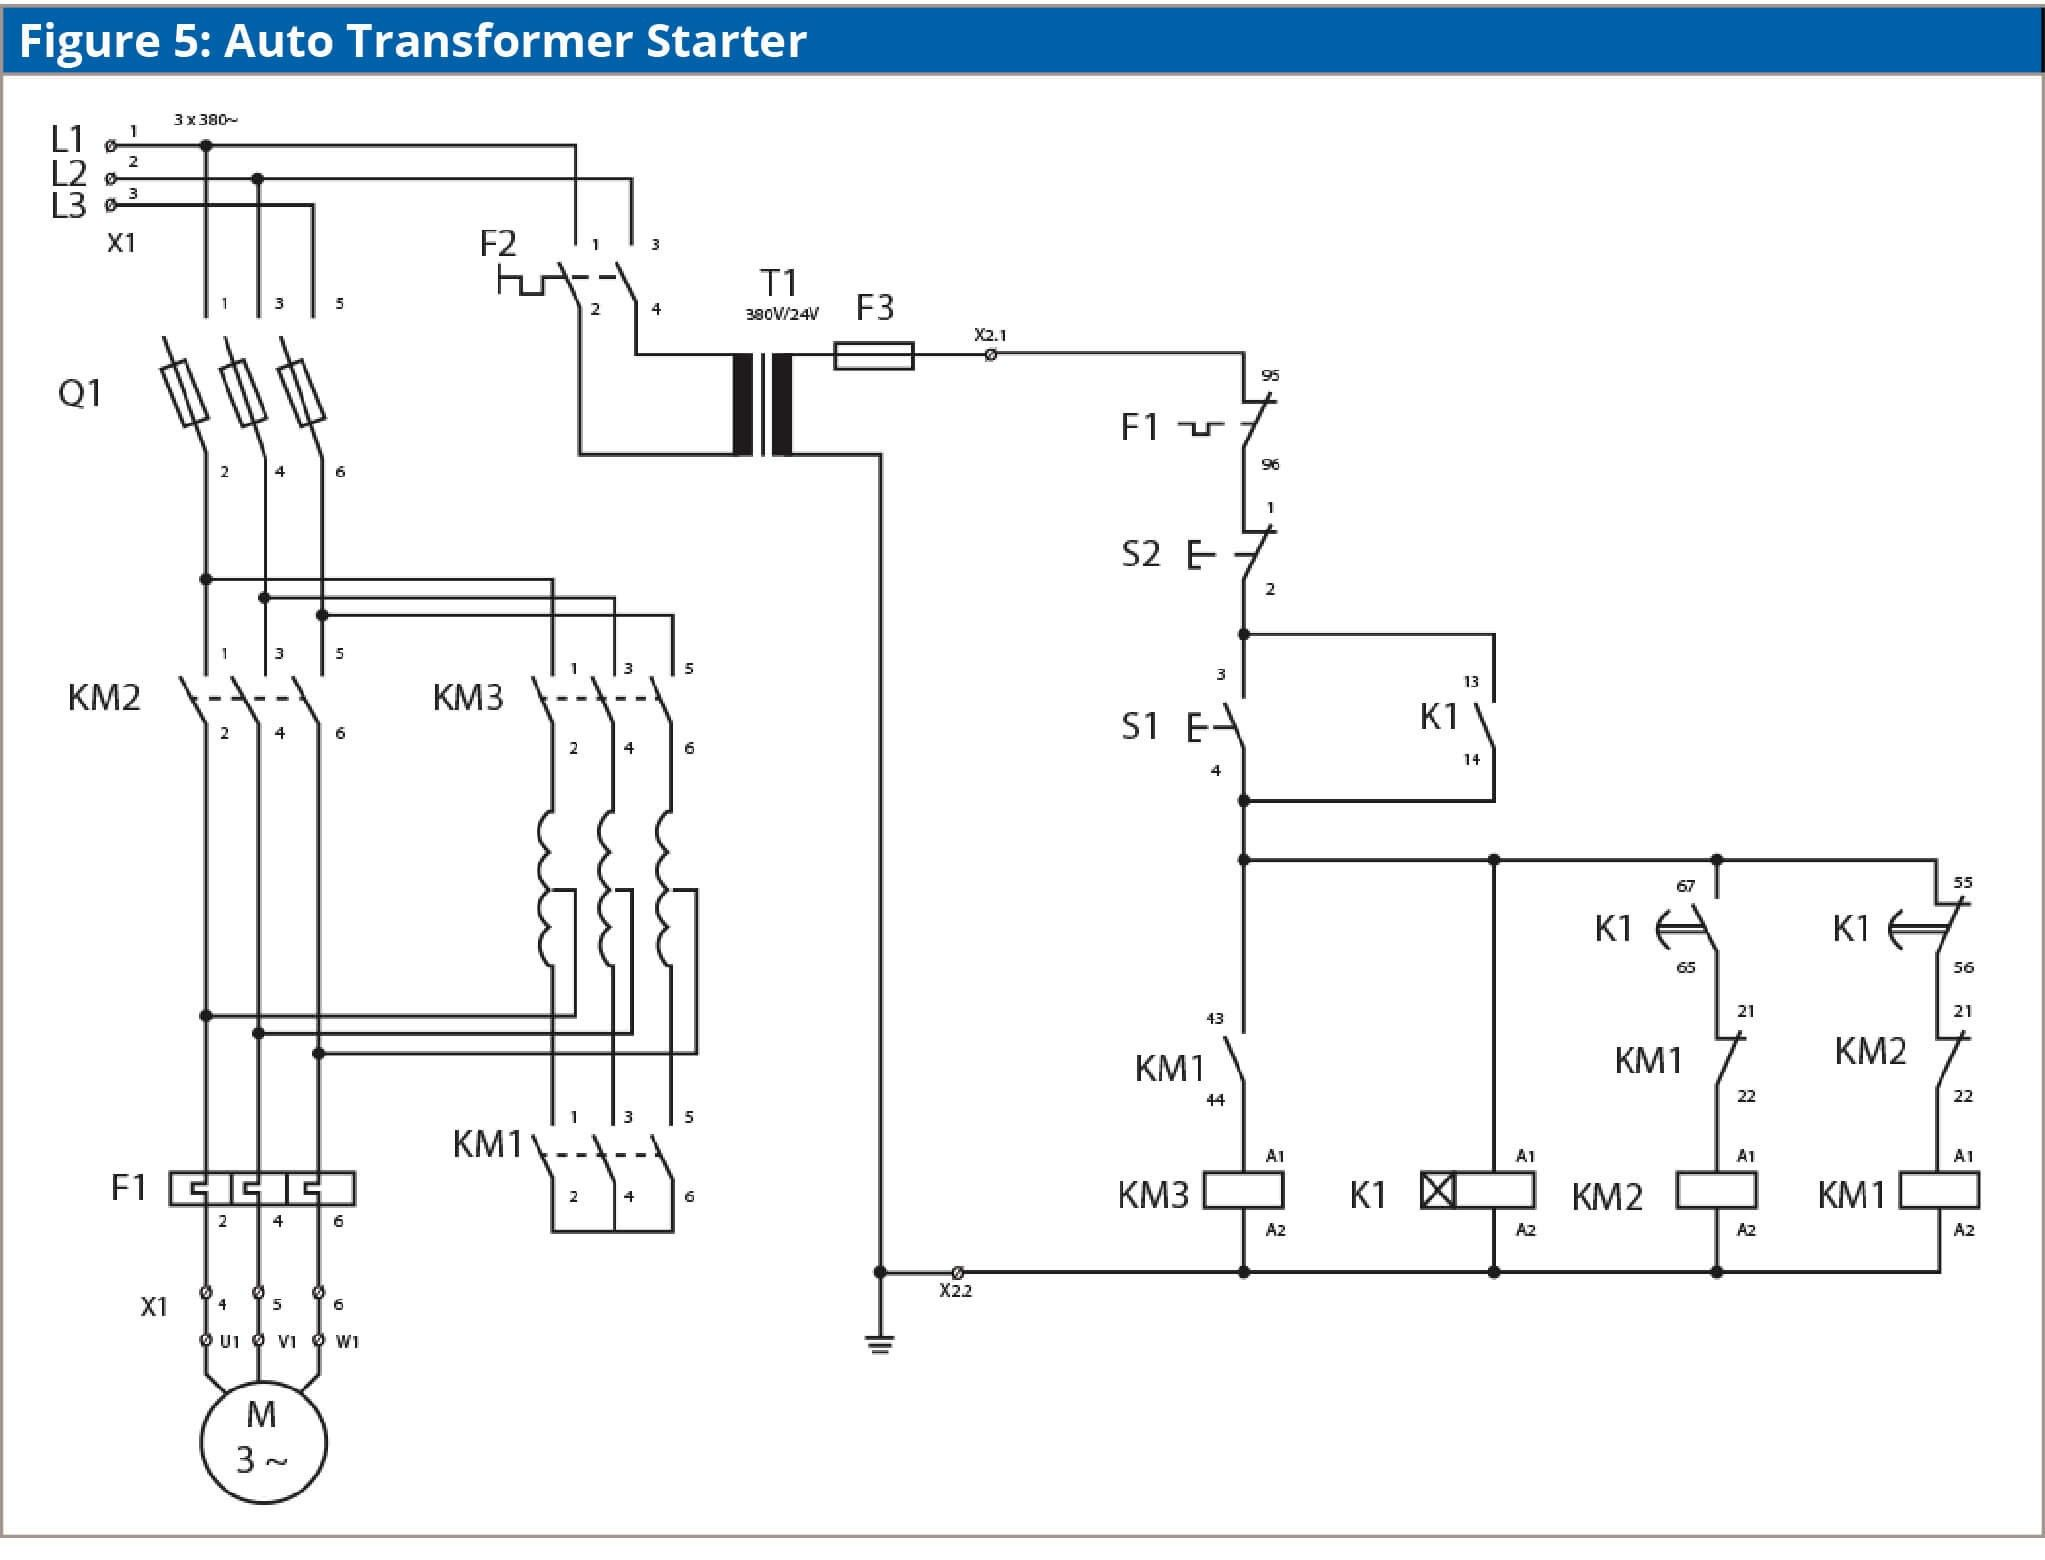 New Wiring Diagram Of Auto Transformer Starter #diagram #diagramtemplate  #diagramsample | ListrikPinterest